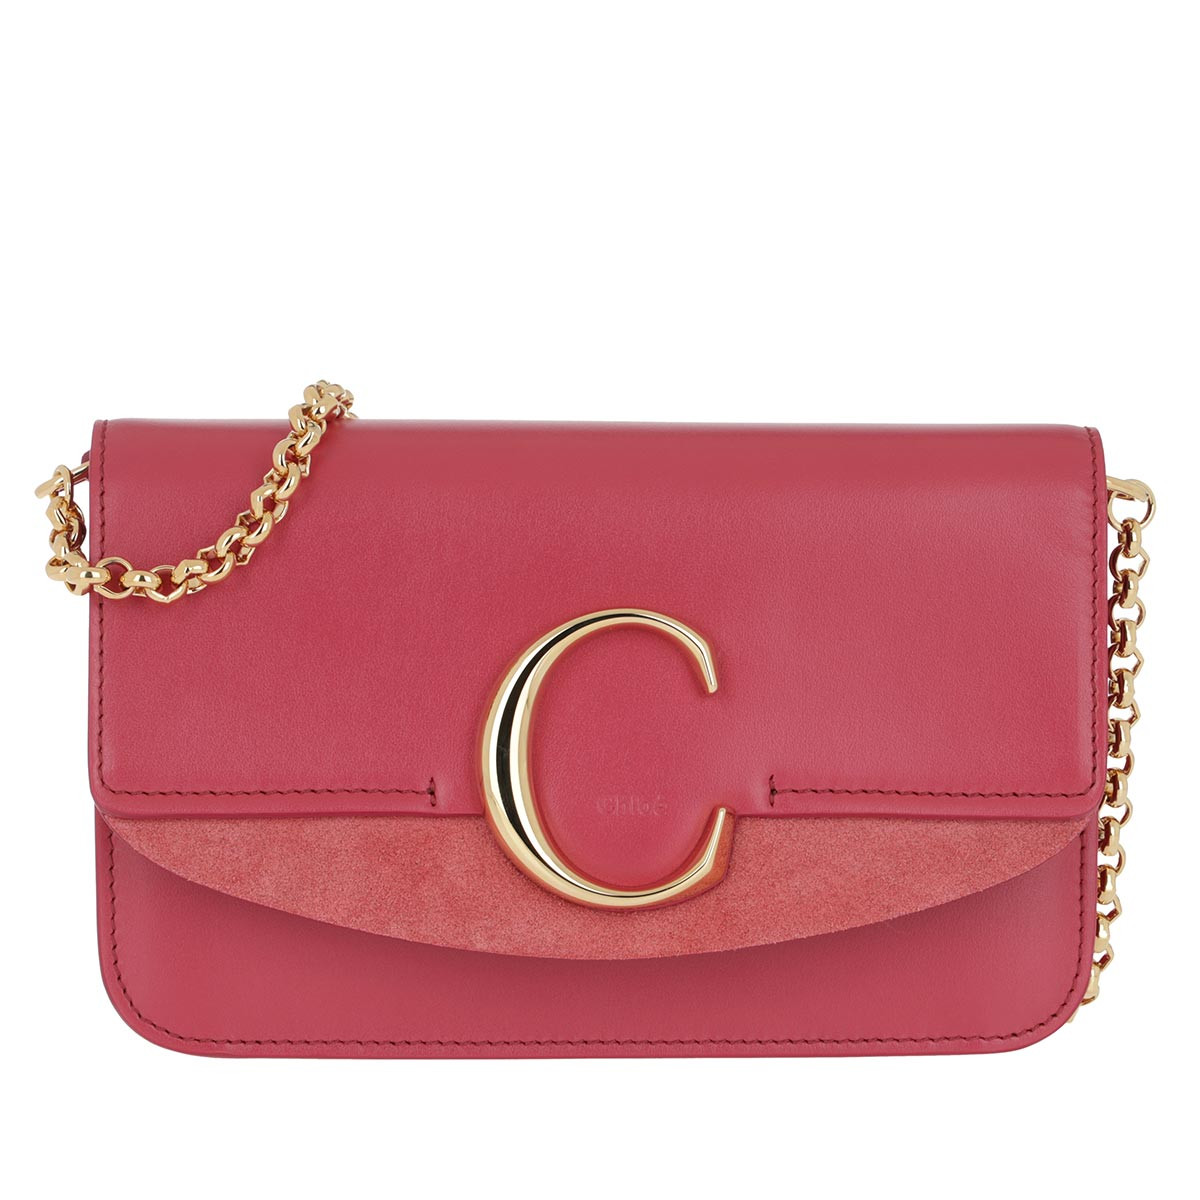 Chloé Umhängetasche - C Clutch With Chain Scarlet Pink - in pink - für Damen